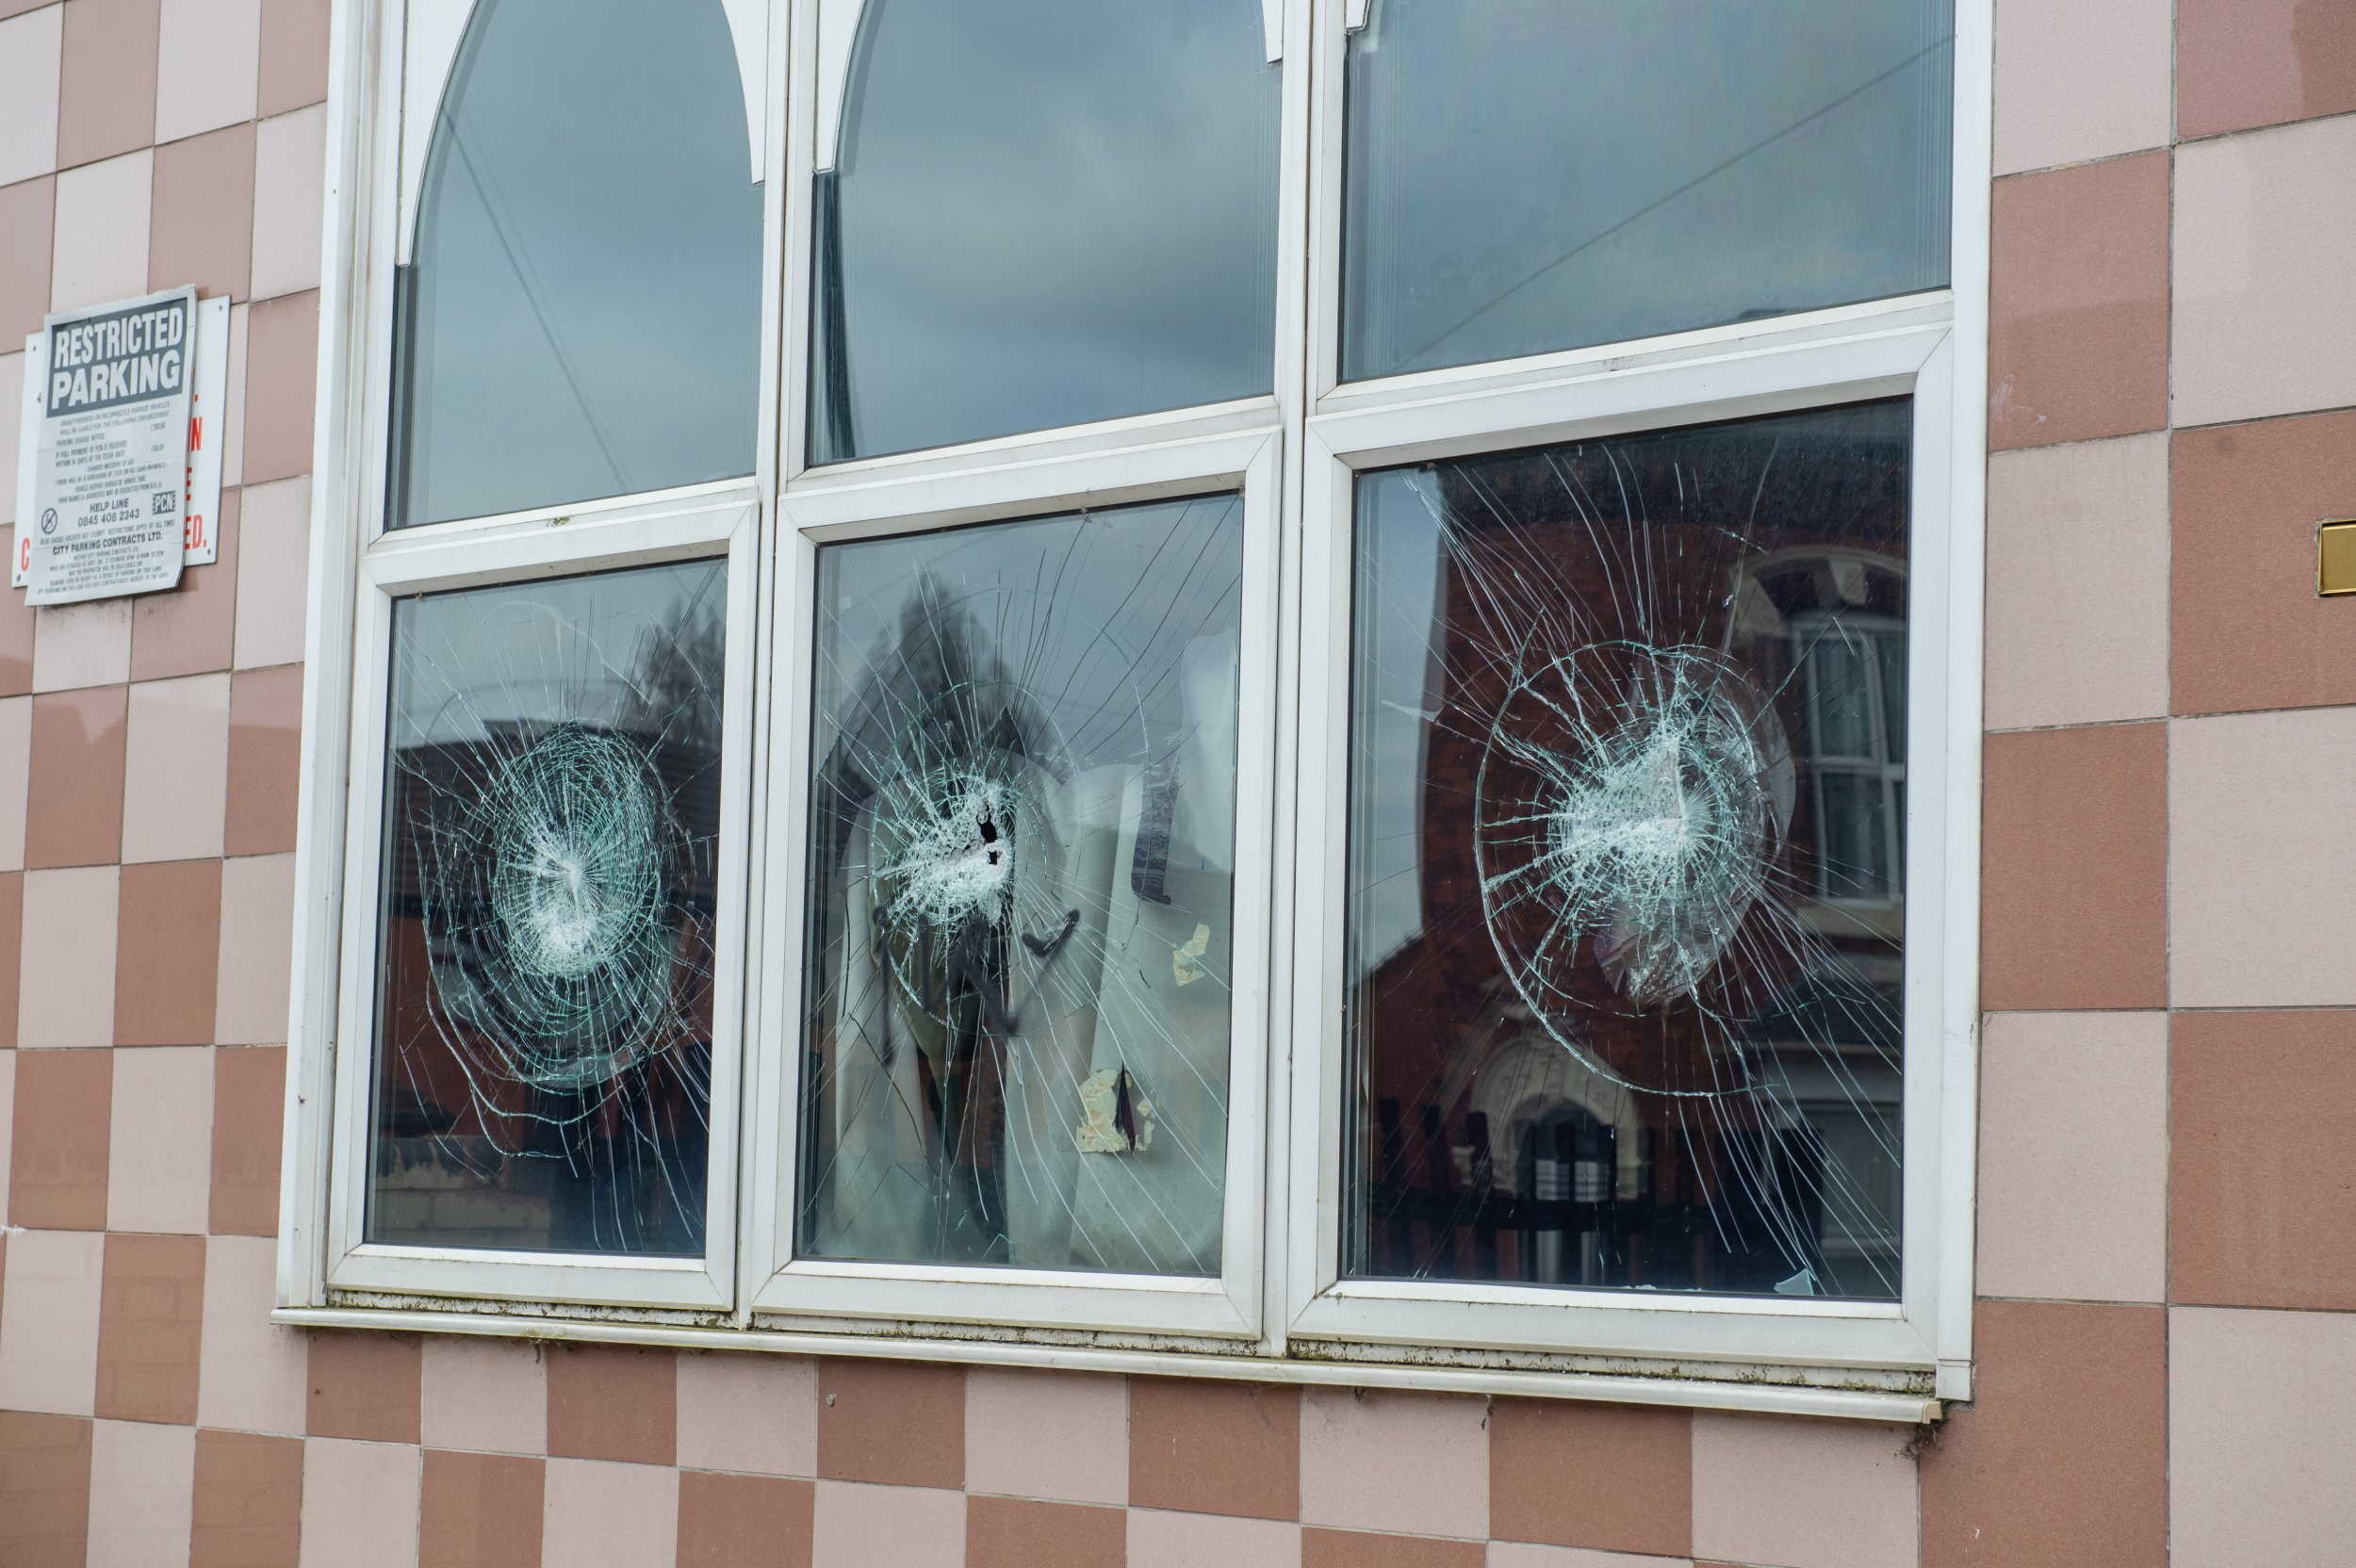 GV of Mosque and Muslim Community Centre Aston on Albert Road, which was one of four mosques attacked with a sledghammer last night, Birmingham. March 21, 2019. Counter terrorism police have launched a probe after several mosques in Birmingham had their windows smashed in with sledgehammers overnight. See SWNS story SWMDmosques. Vandals struck at four different Islamic places of worship in the city across the city in the early hours of today (Thurs). Detectives say they are unsure of the motive behind the rampage but West Midlands Counter Terrorism Unit is also investigating in the wake of the Christchurch massacre. Members of the Birmingham Muslim community had already spoken of their fears following the New Zealand terror attack which left 50 people dead.